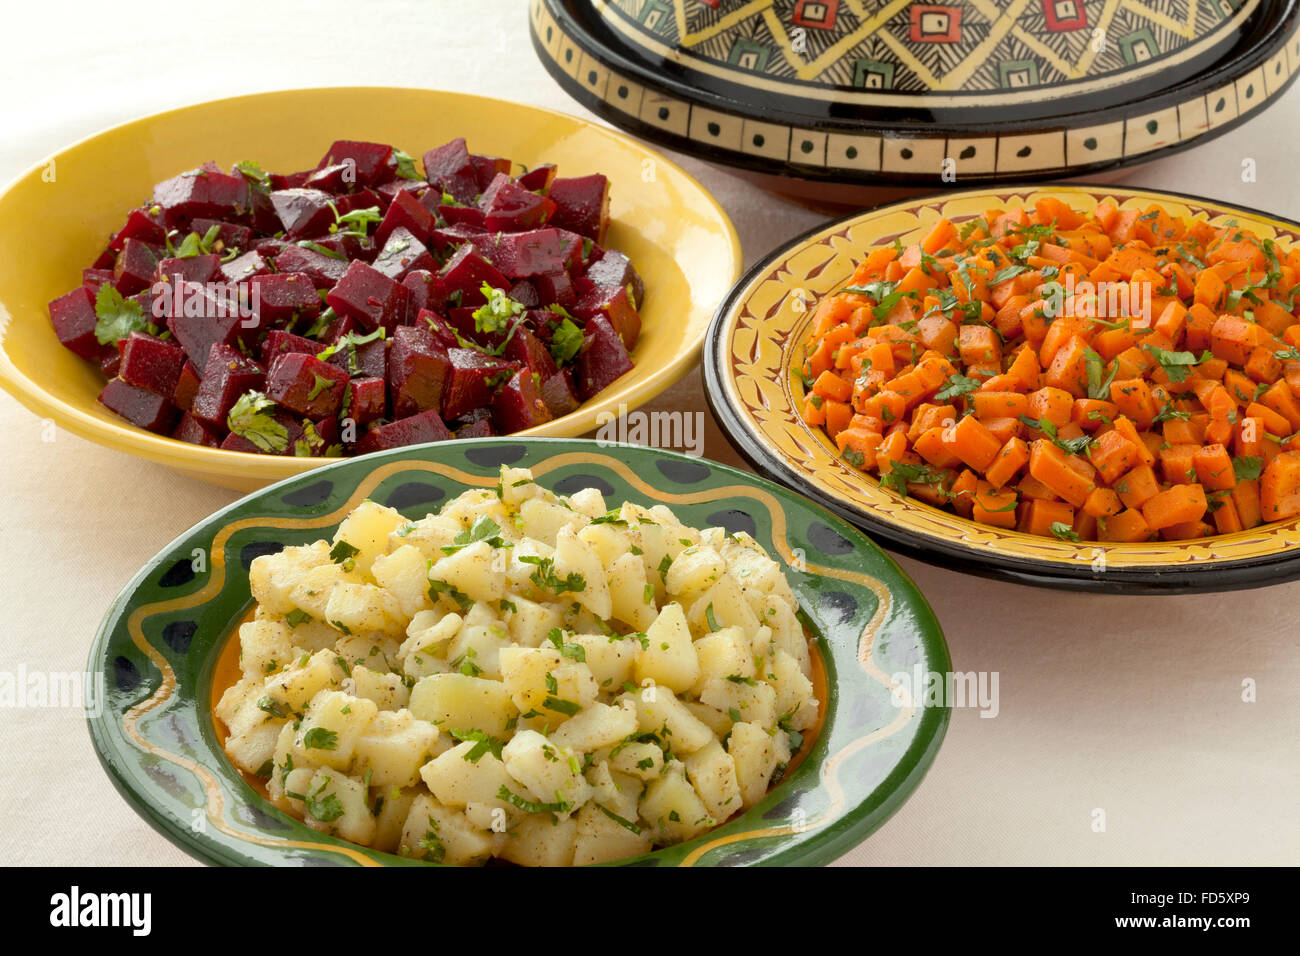 Moroccan diversity of traditional salads on the table - Stock Image